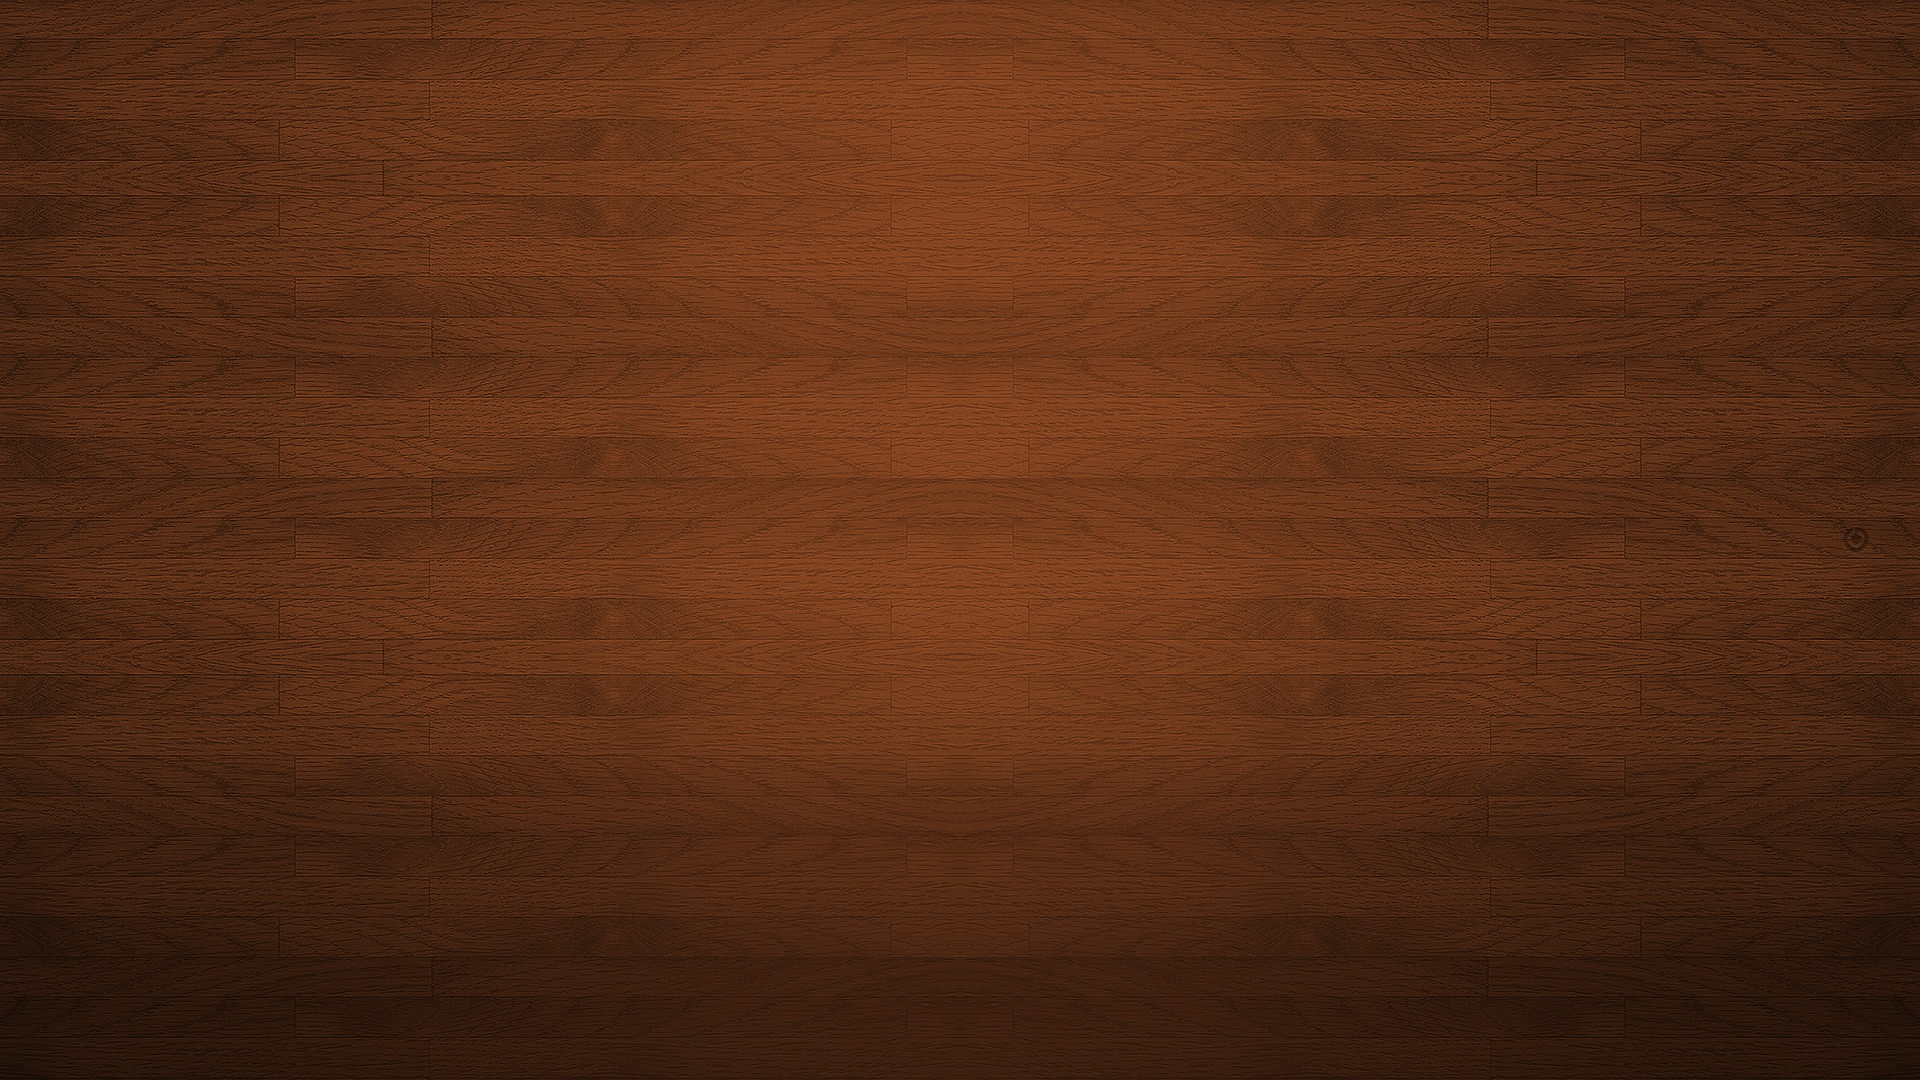 30 Hd Wood Backgrounds Wallpapers Freecreatives